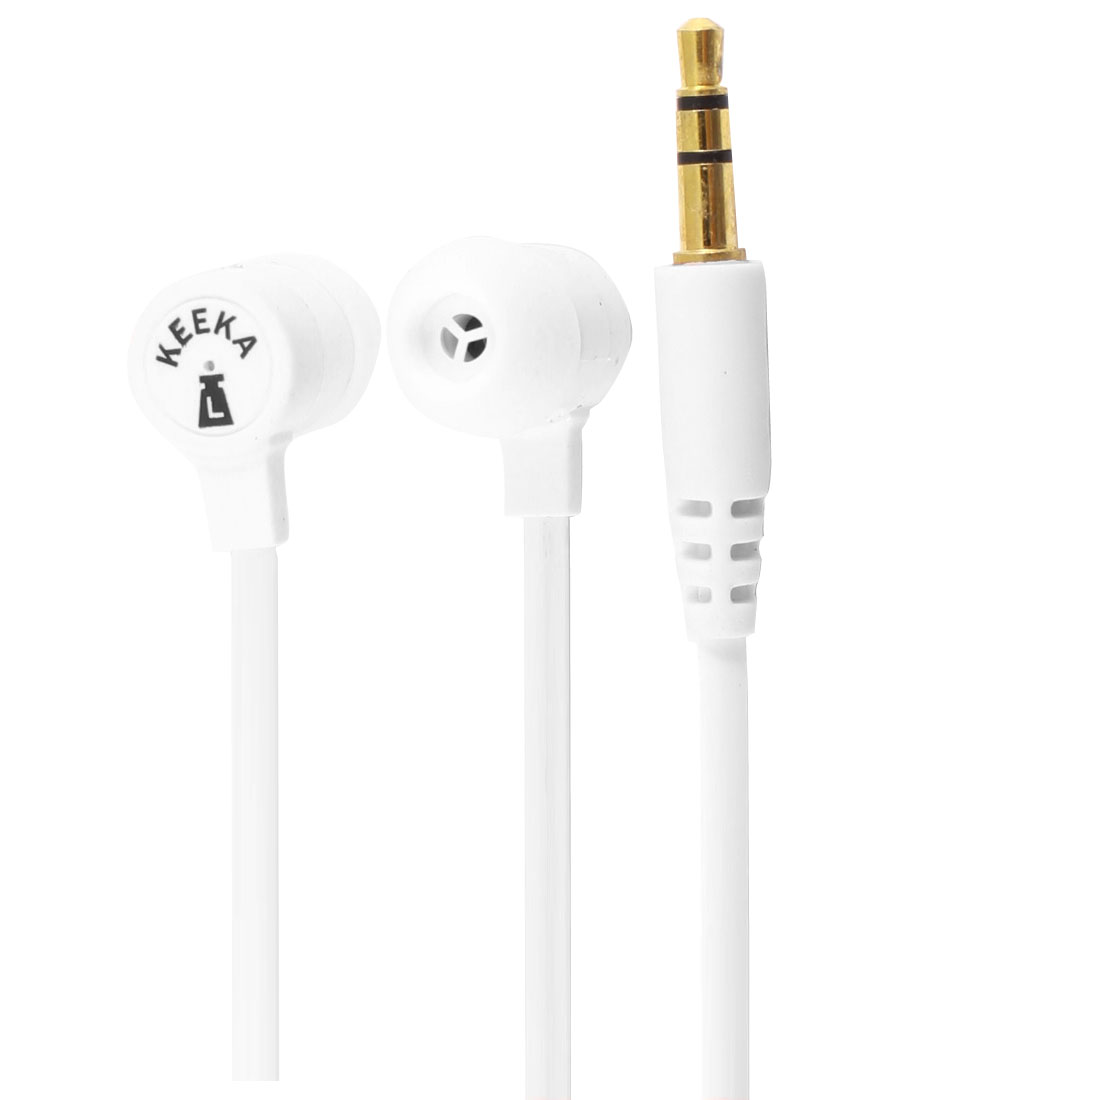 Authorized KEEKA 3.5mm Plug White in Ear Stereo Headphone Earphone for Cell Phone